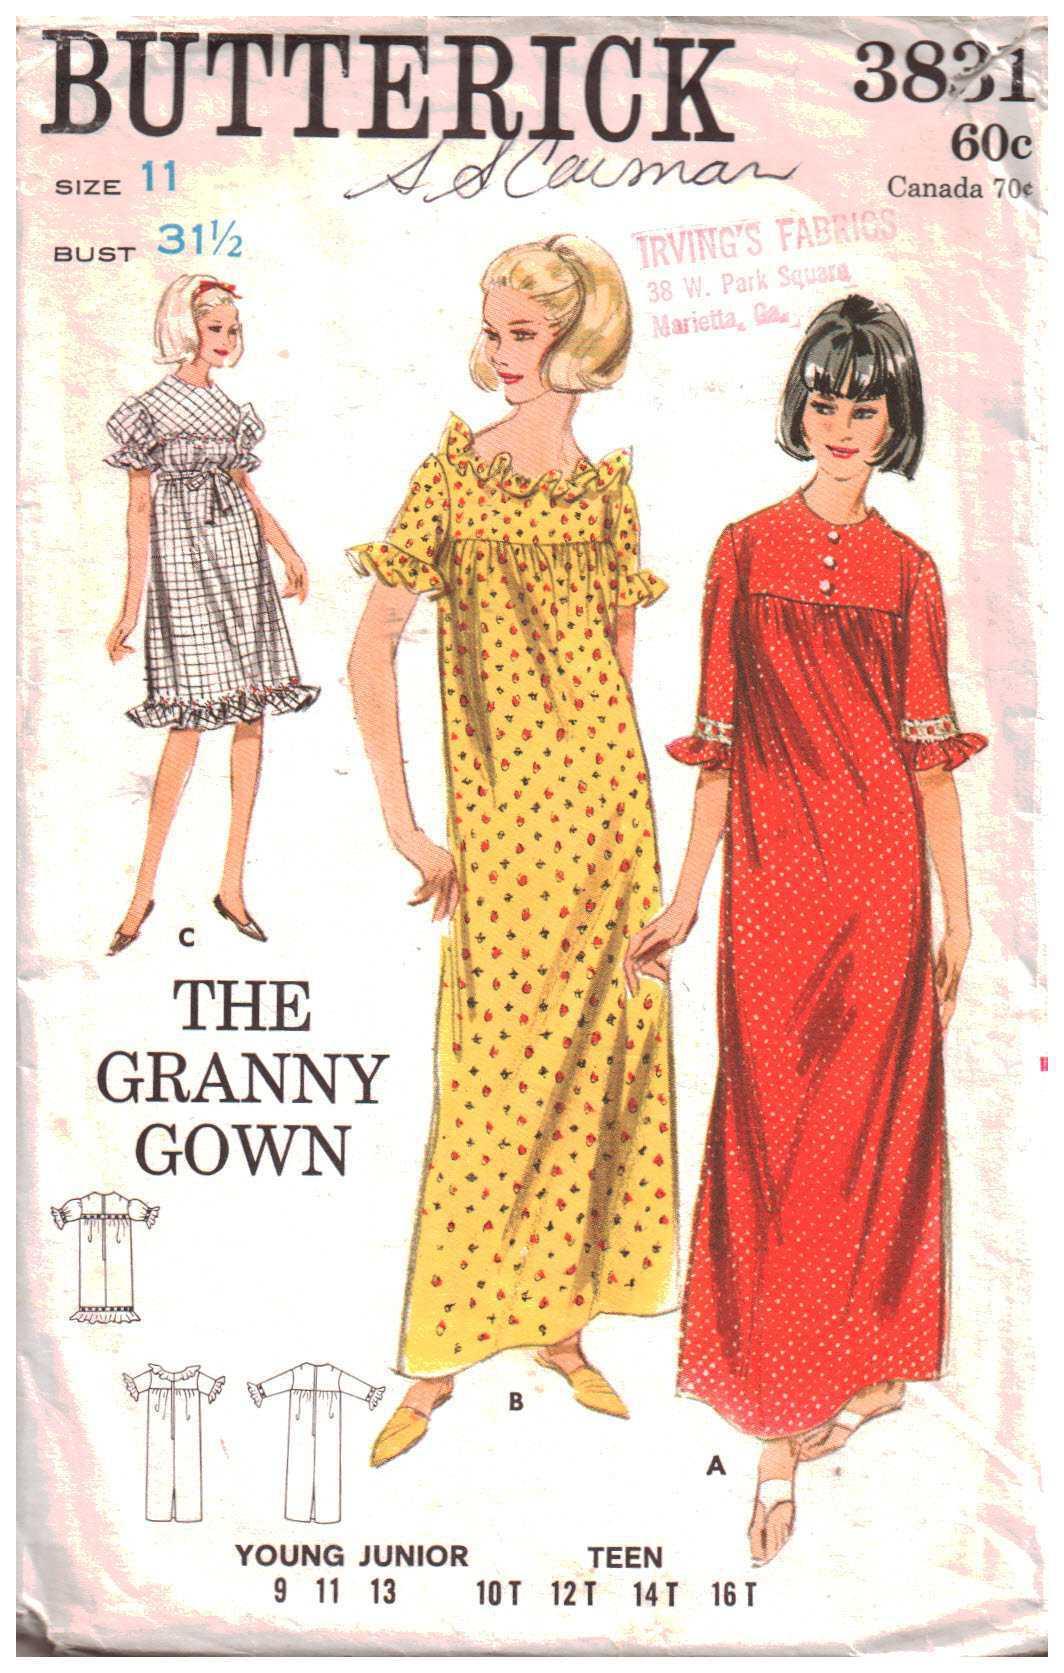 Butterick 3831 The Granny Gown - Dress Size: 11 Bust 31.5 Used ...